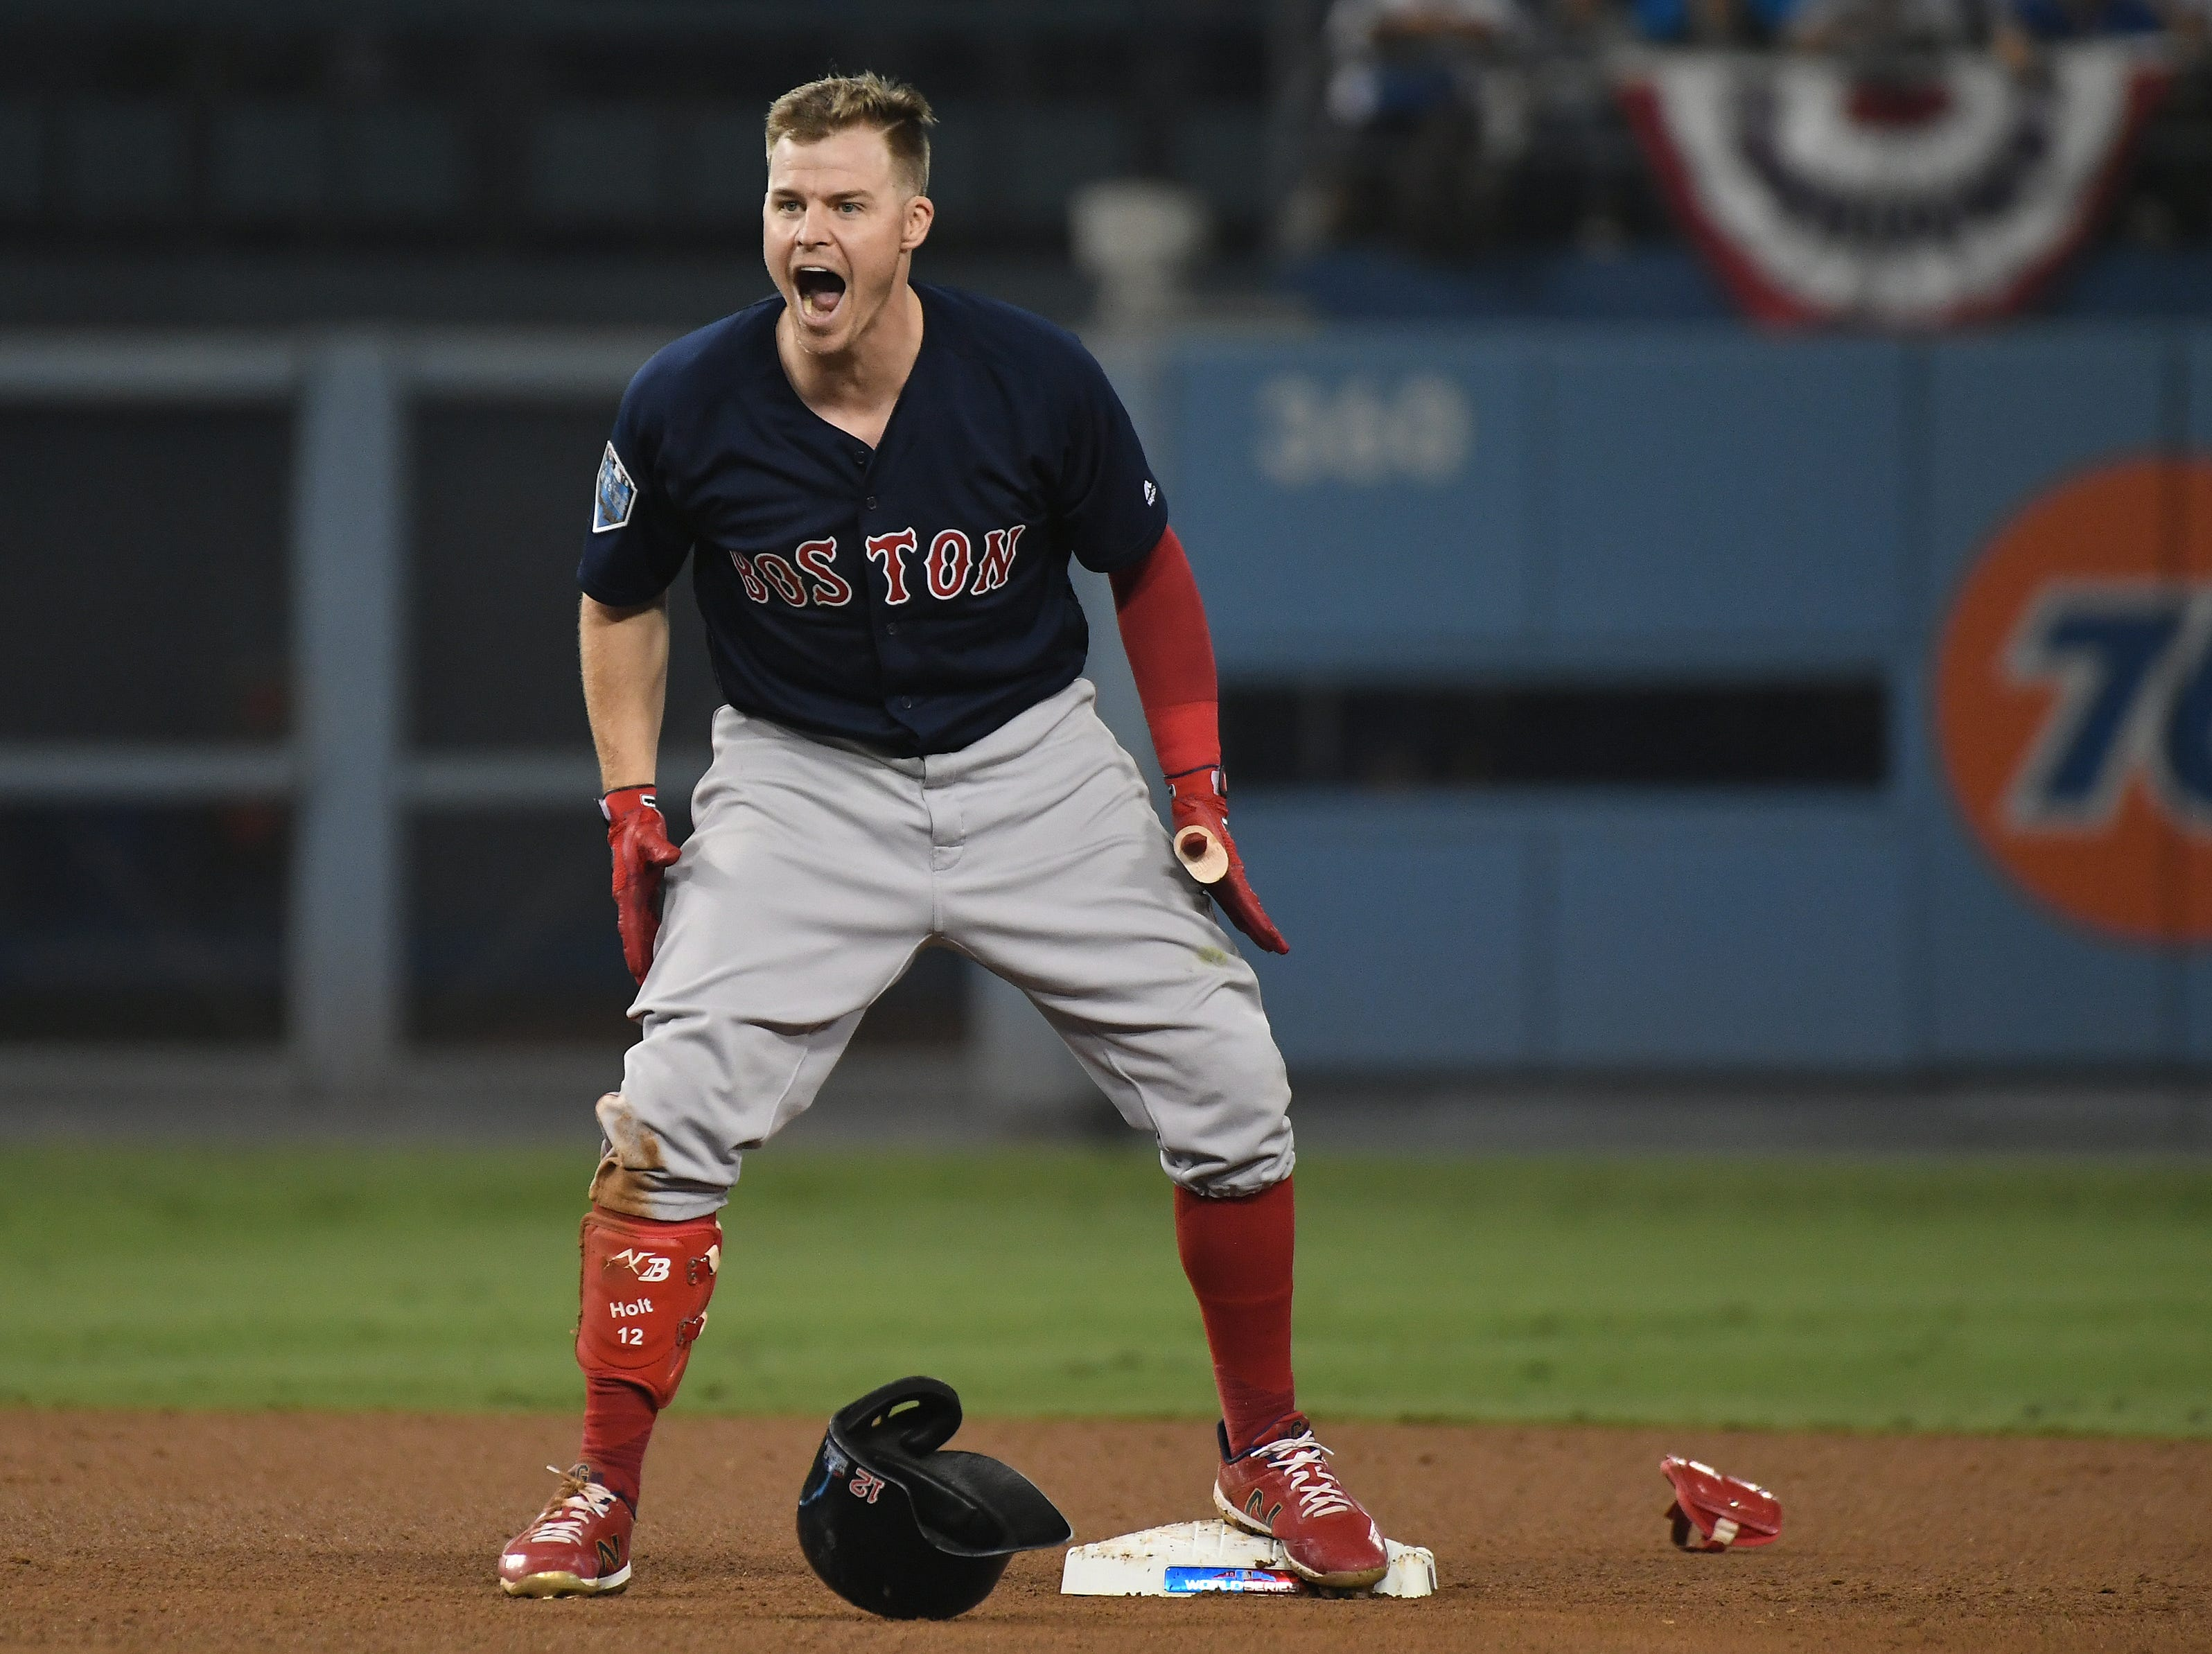 Oct. 27: Boston Red Sox second baseman Brock Holt reacts after hitting a double in the ninth inning against the Los Angeles Dodgers in Game 4 of the World Series.